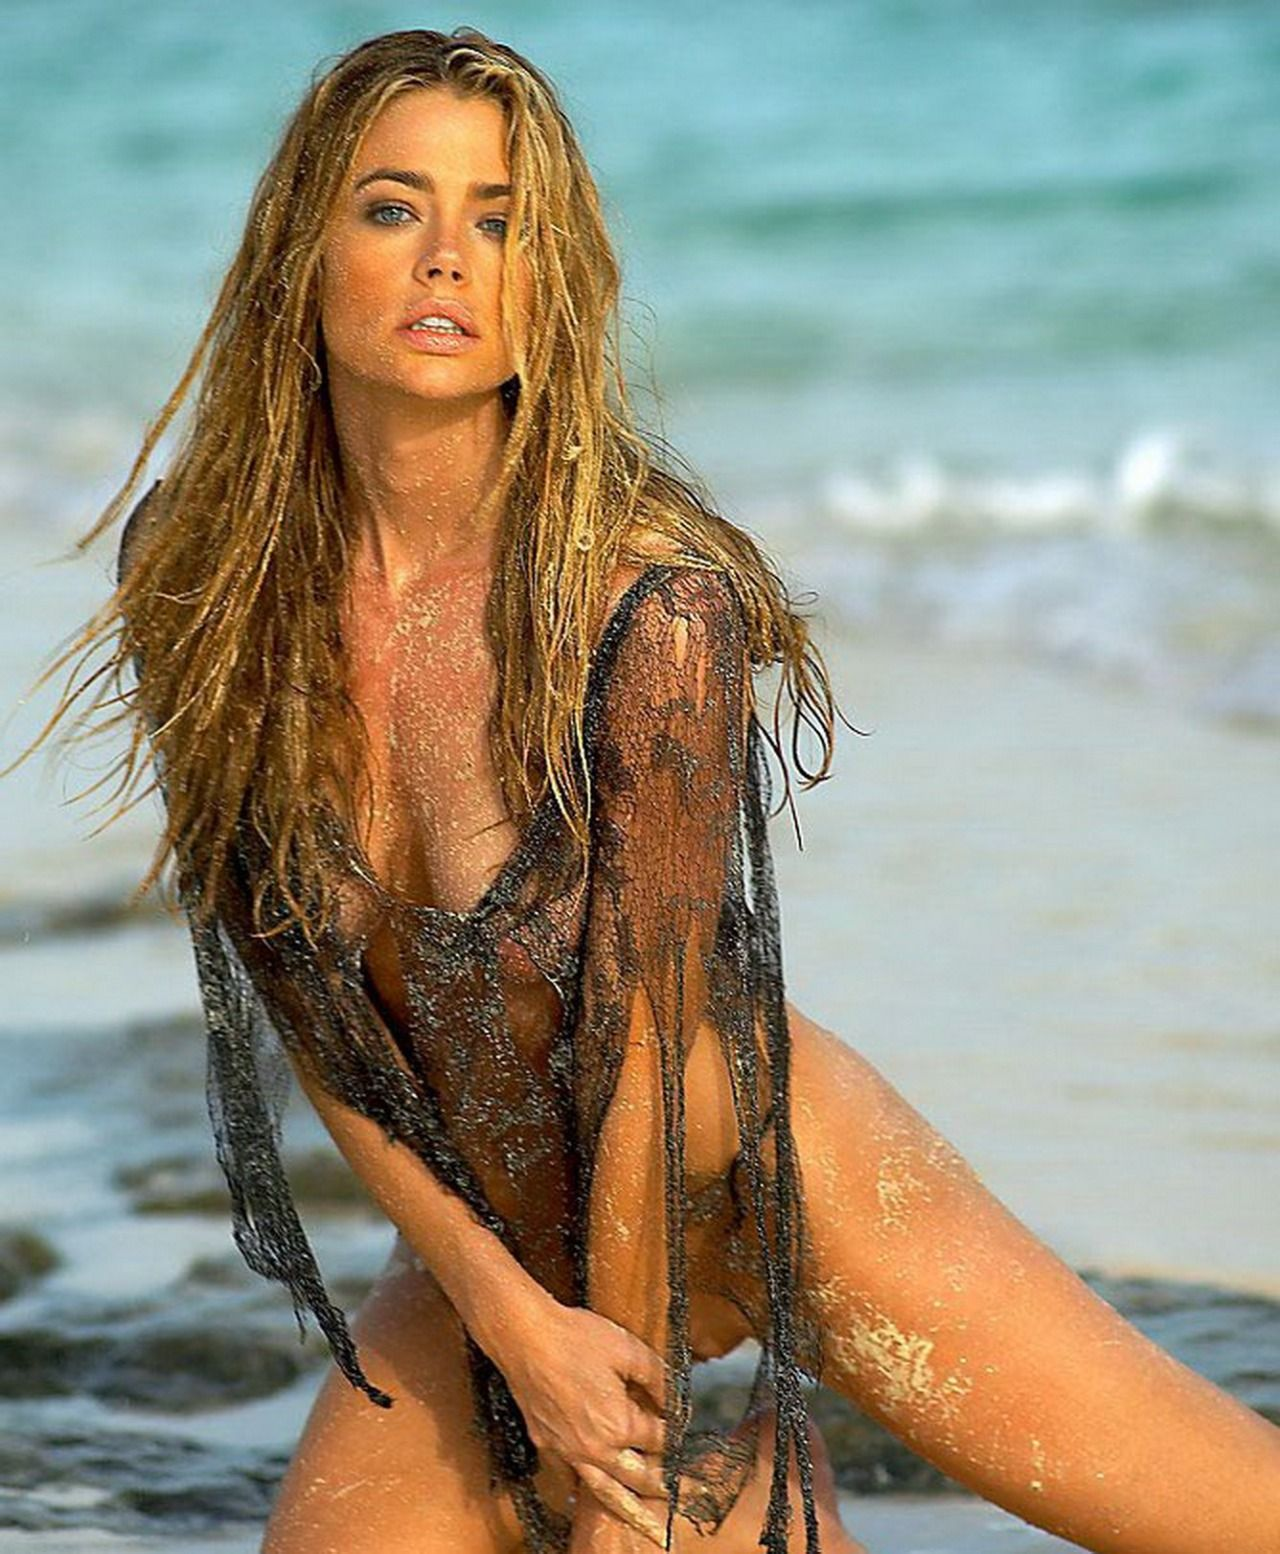 Images of denise richards nude — photo 2